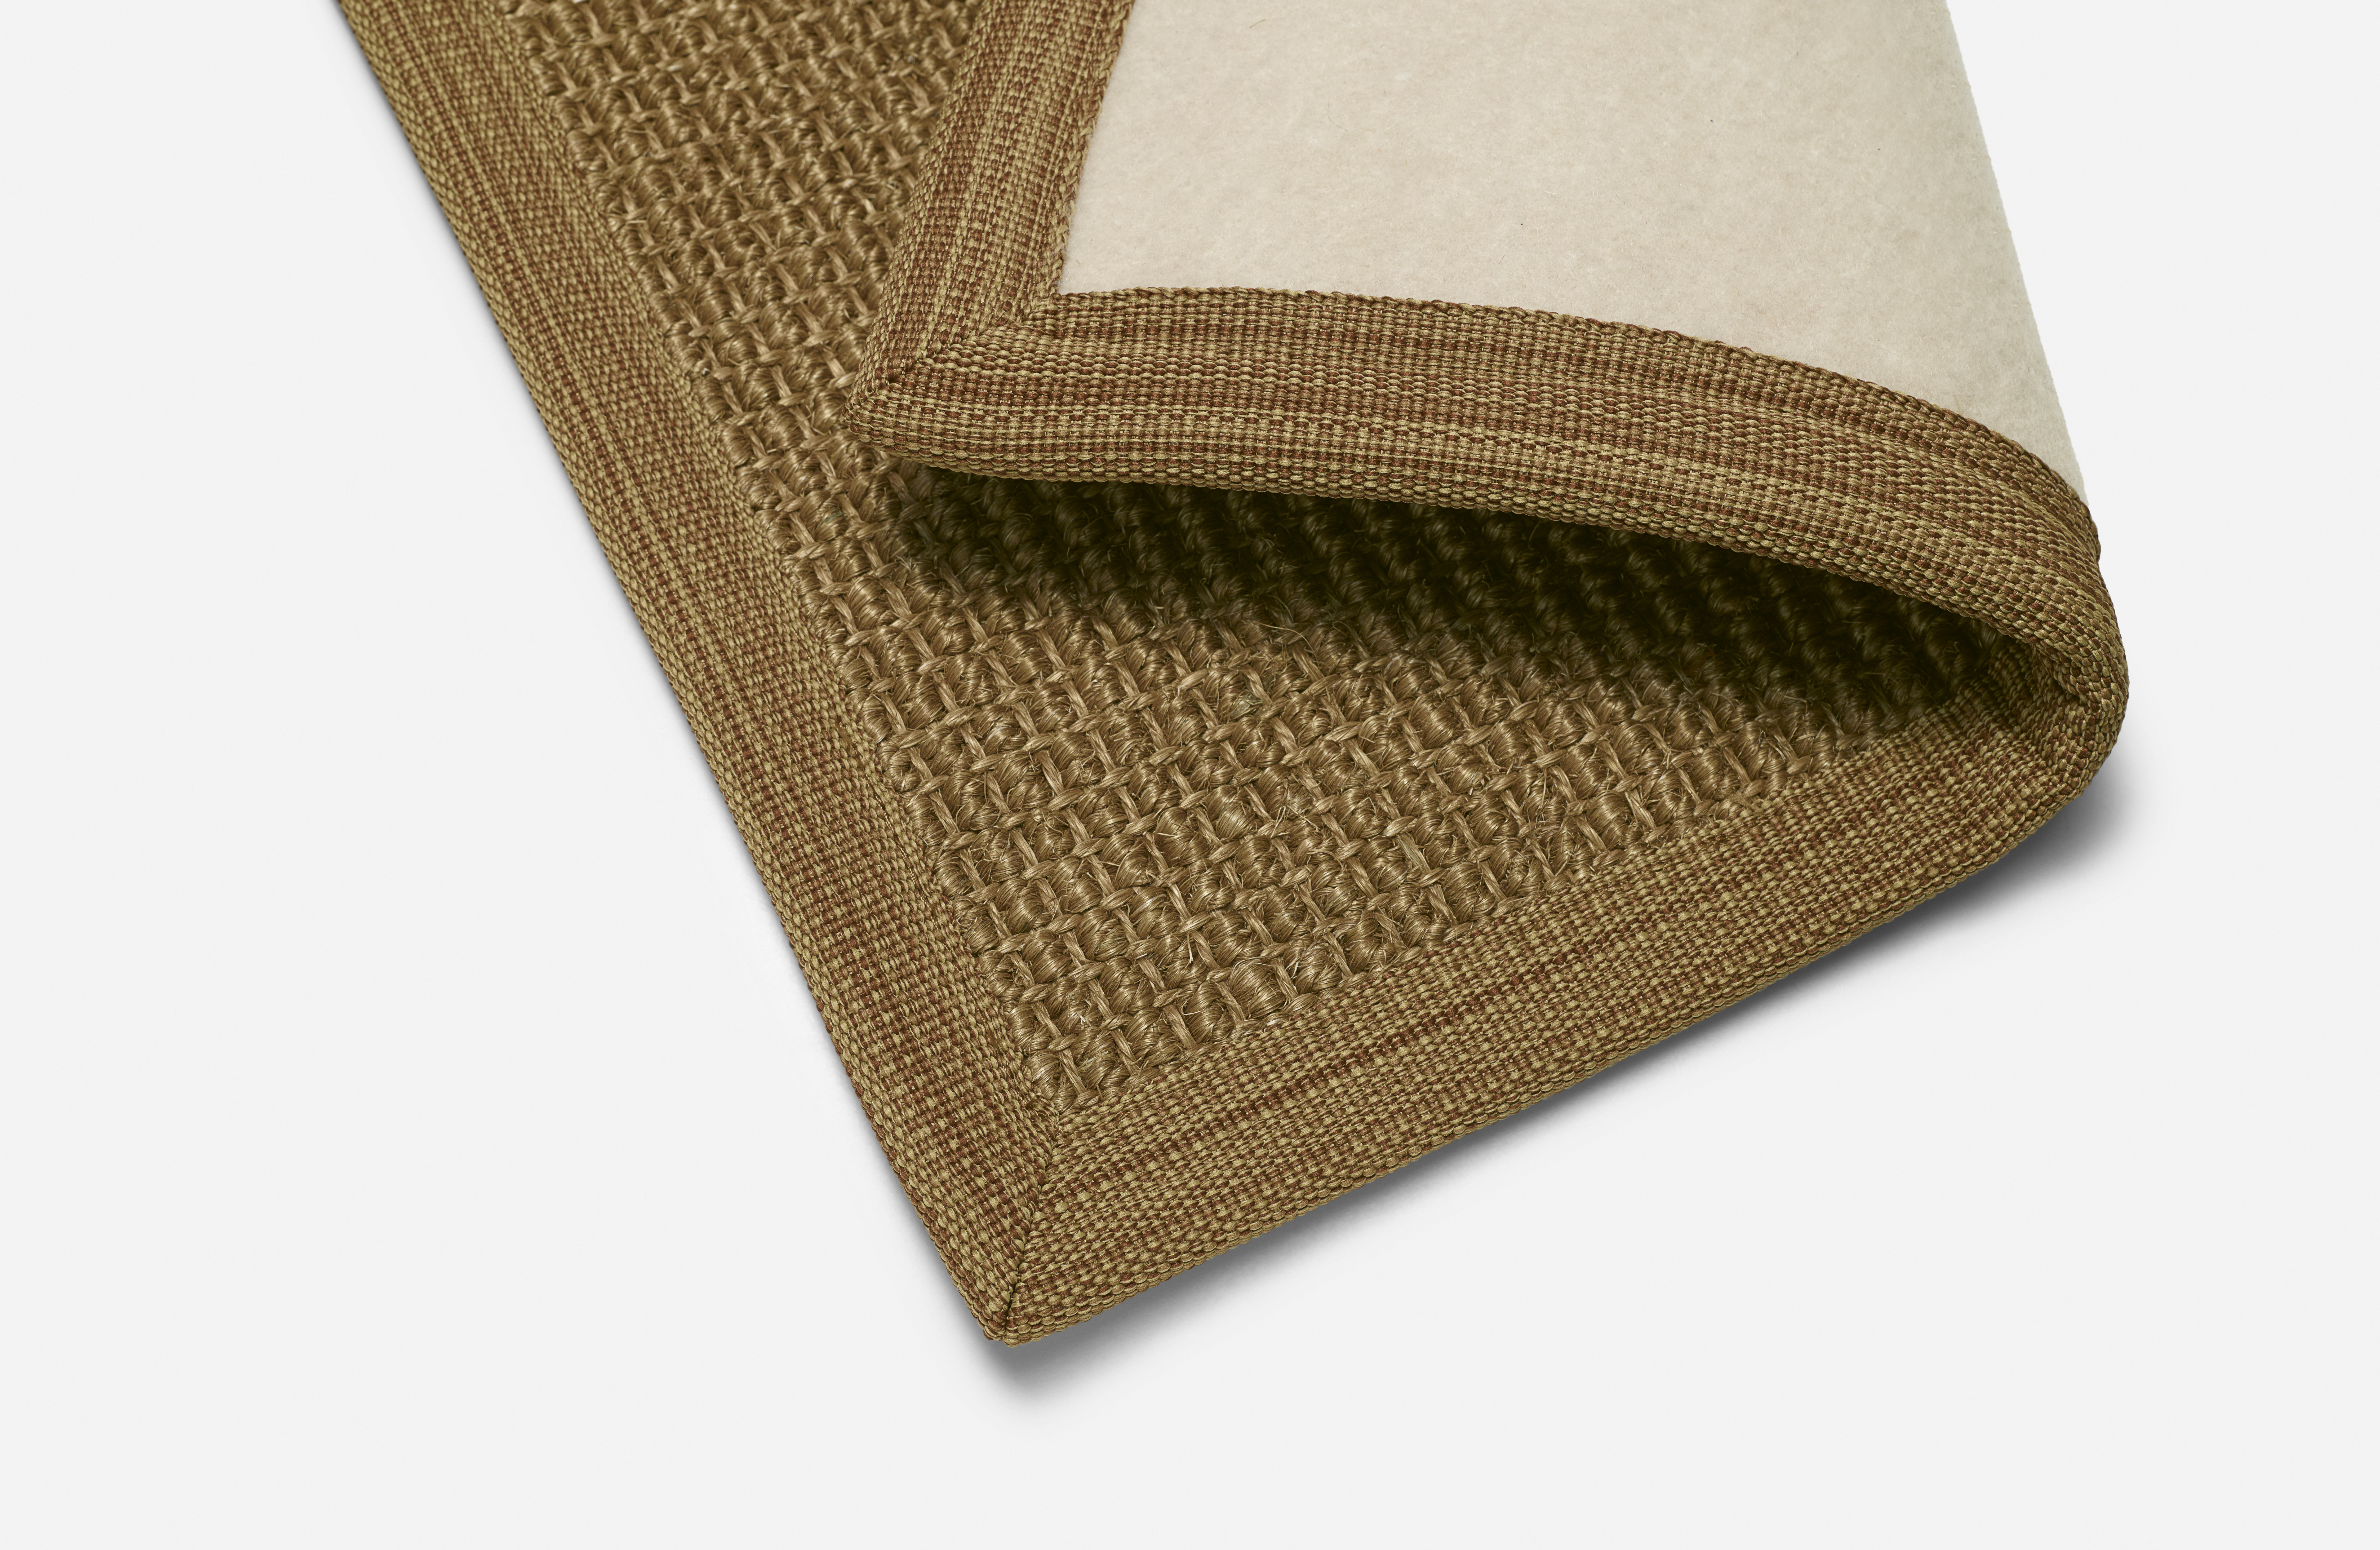 Bay  Sisal Terracotte 2247 with Bay 006 and FX